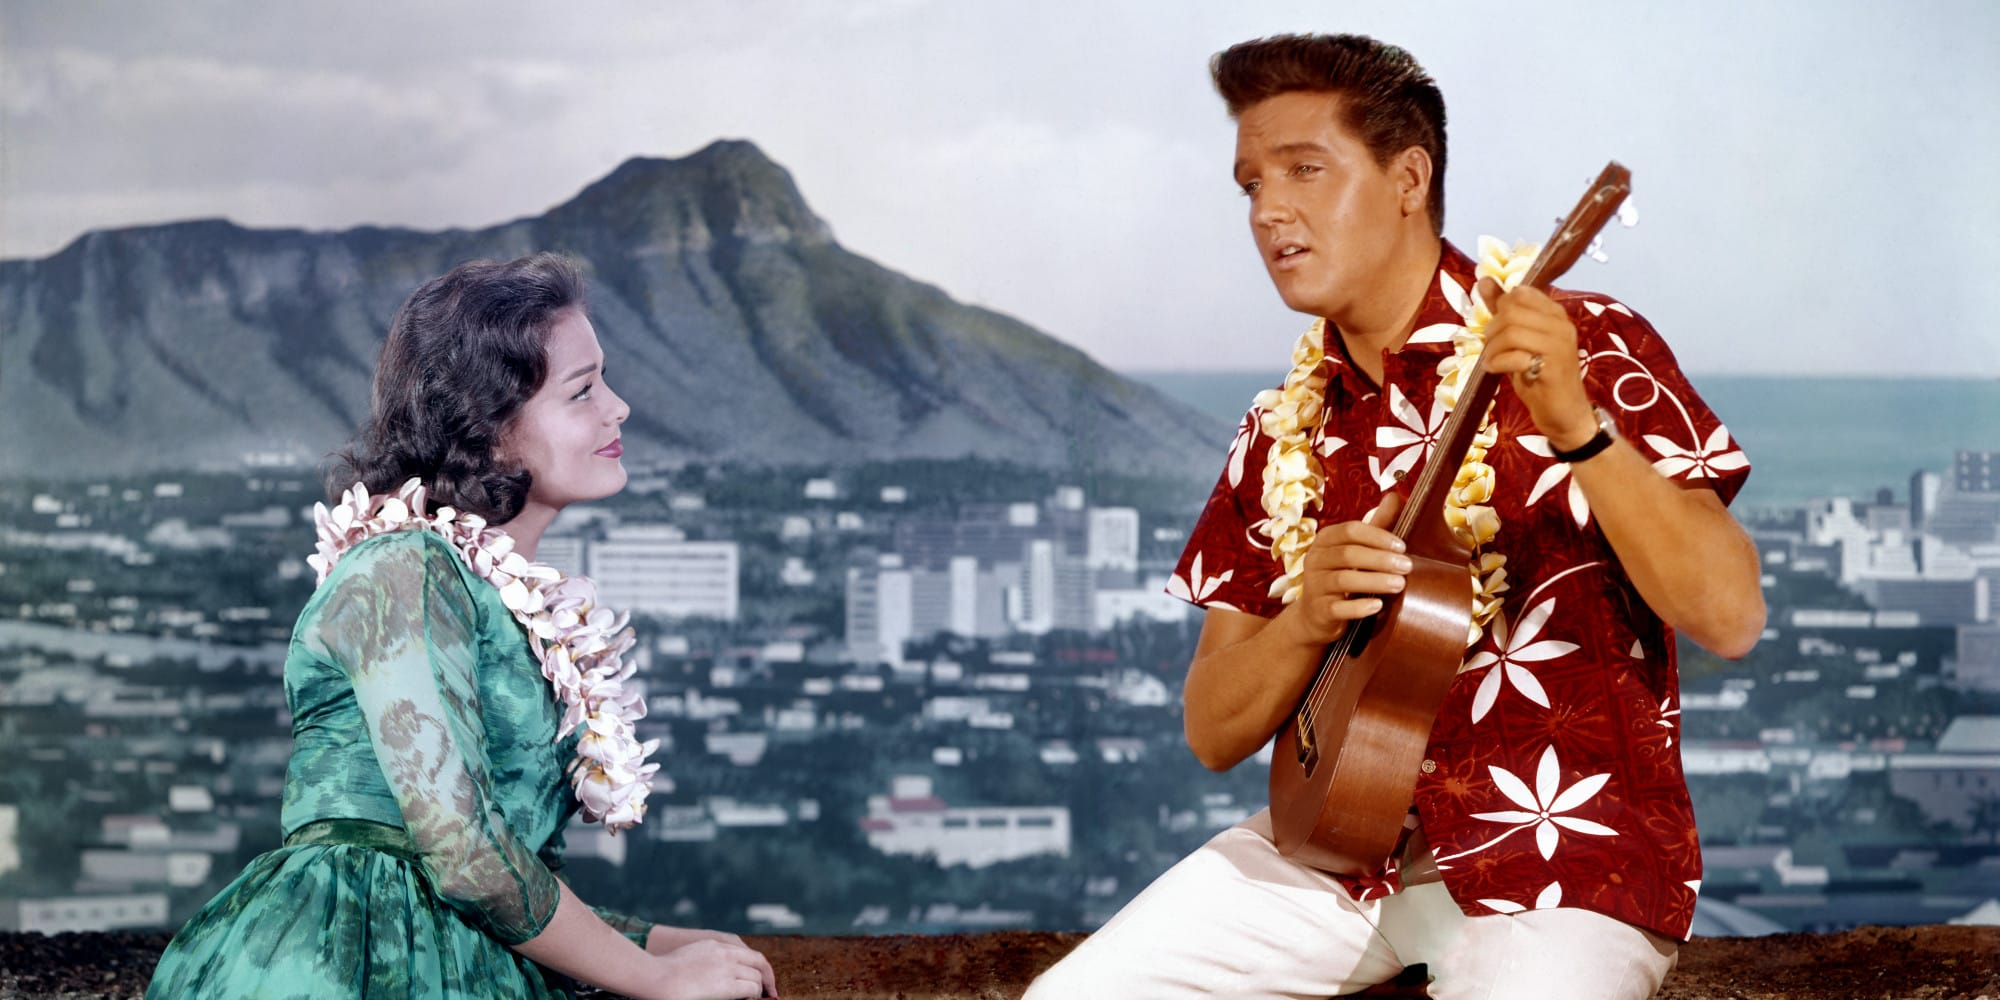 Elvis Presley in a Hawaiian shirt